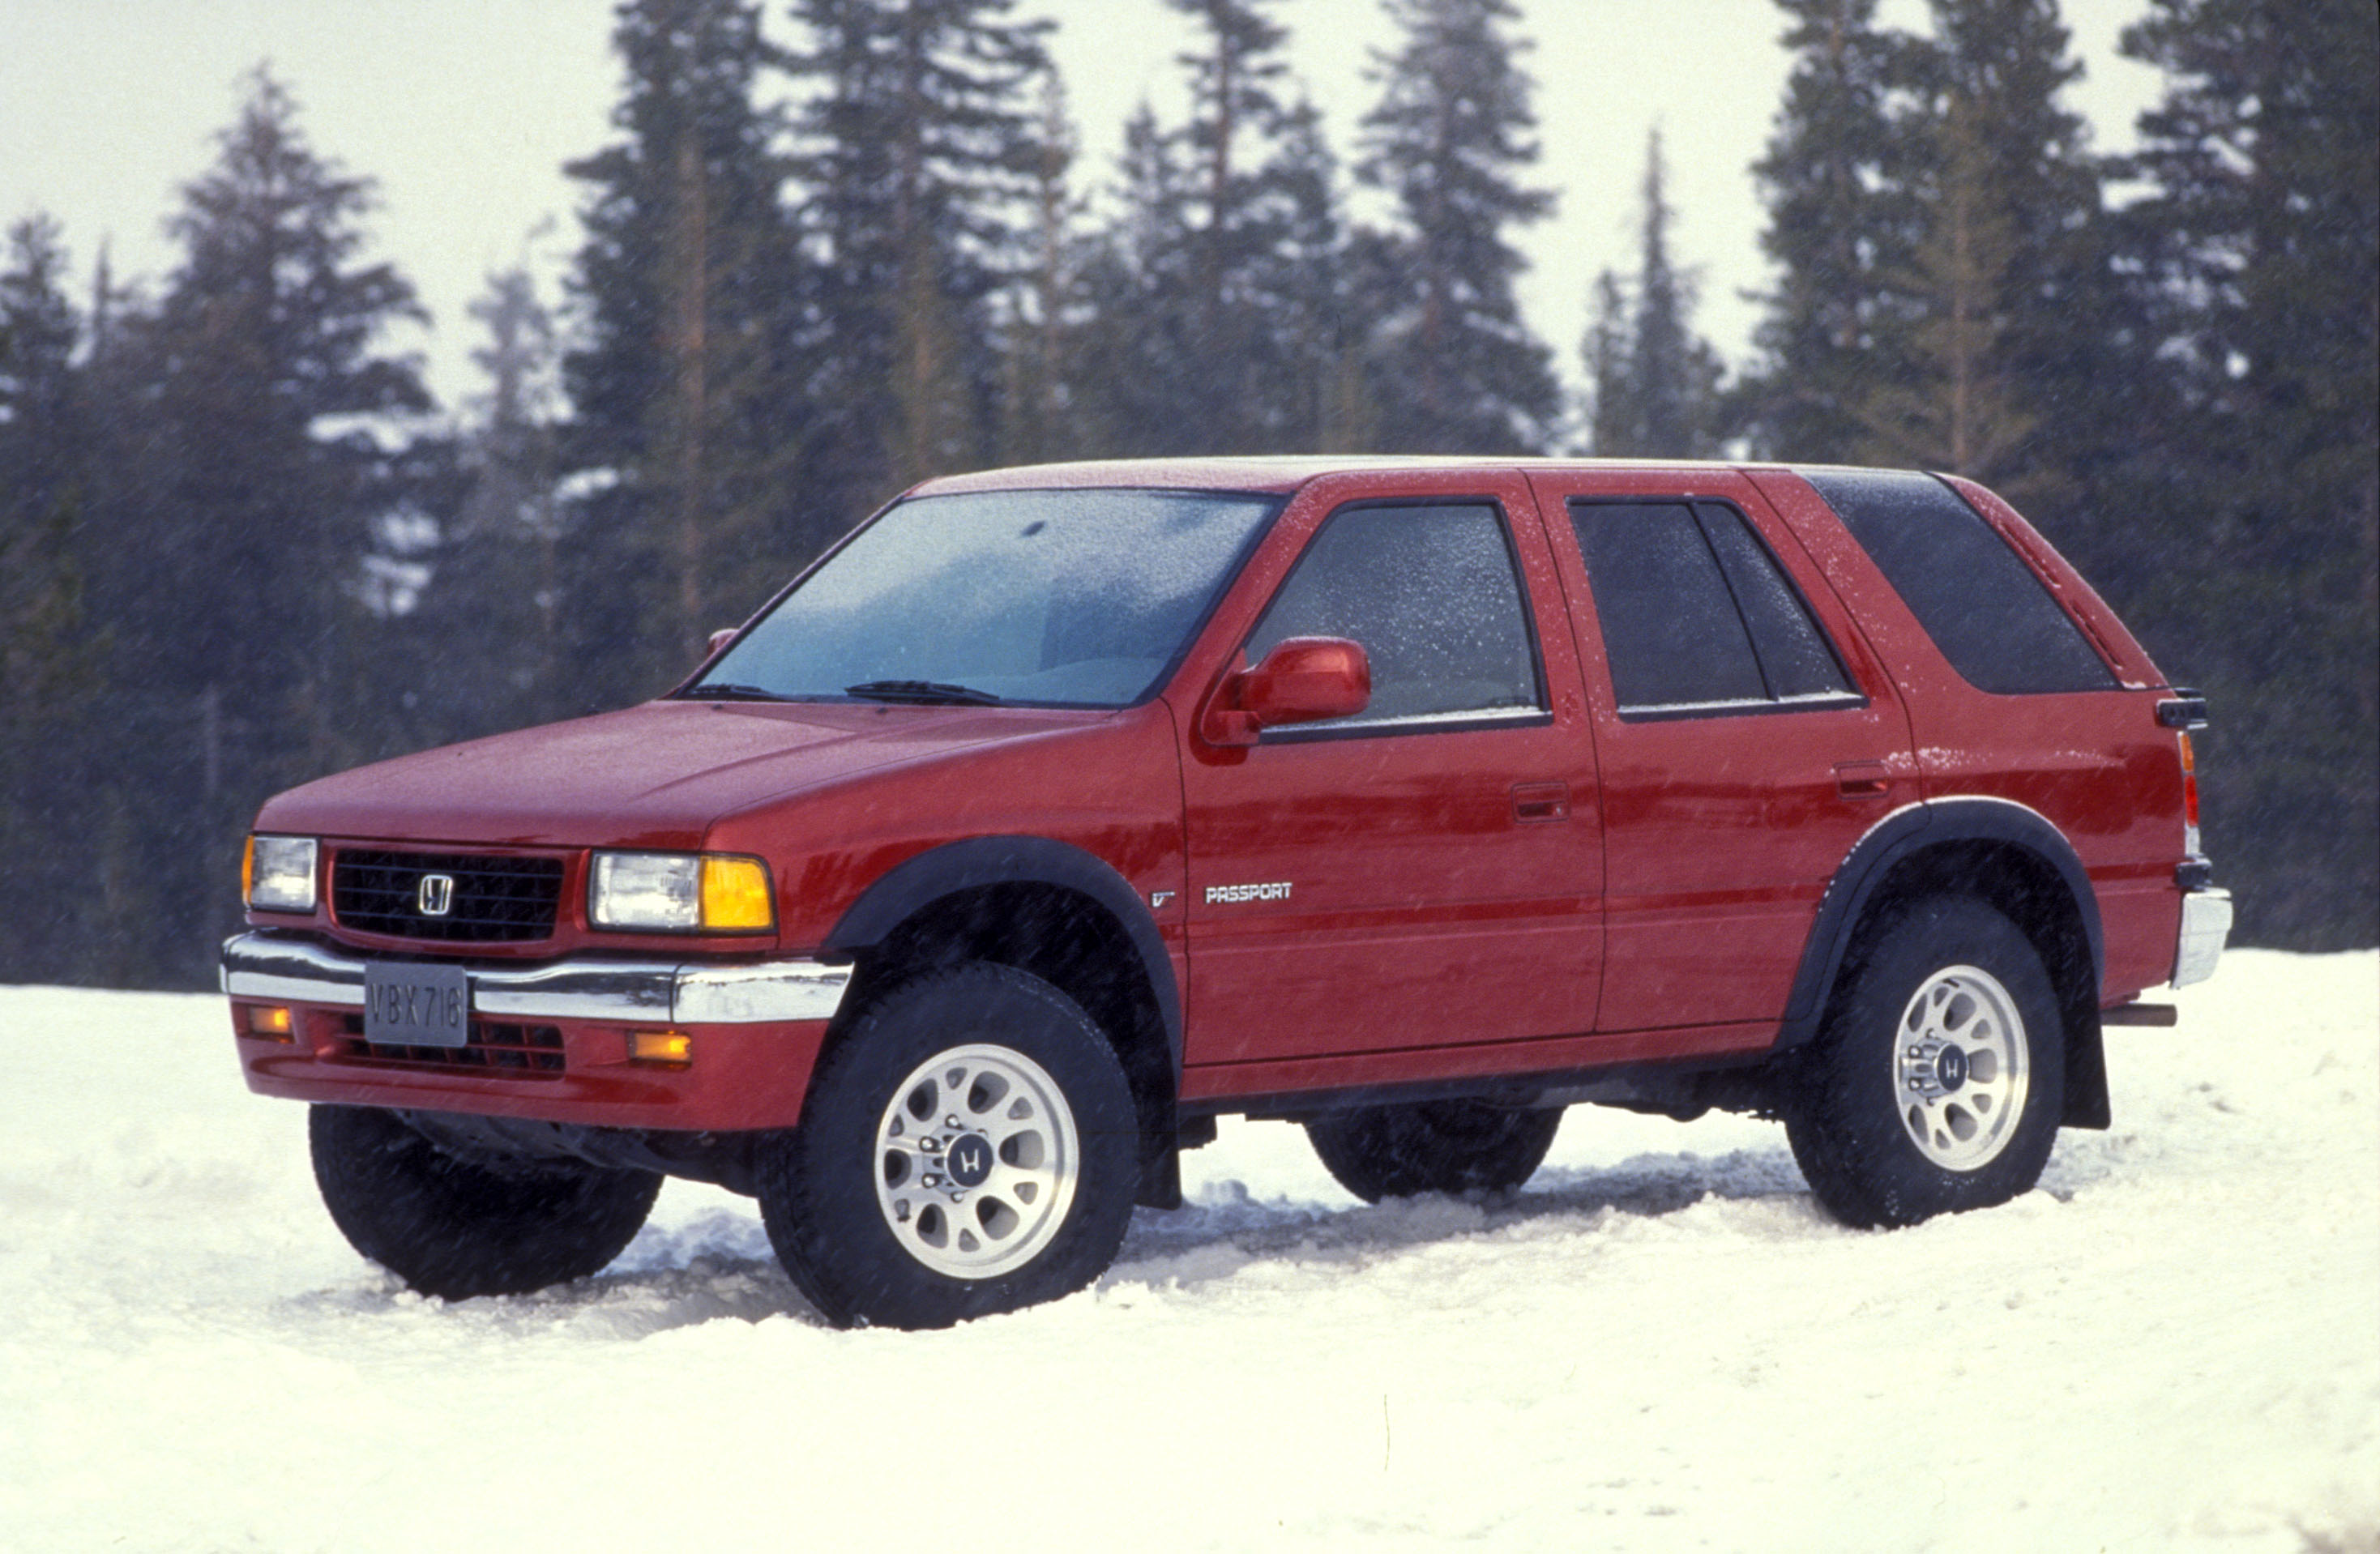 1994 Honda Passport #1